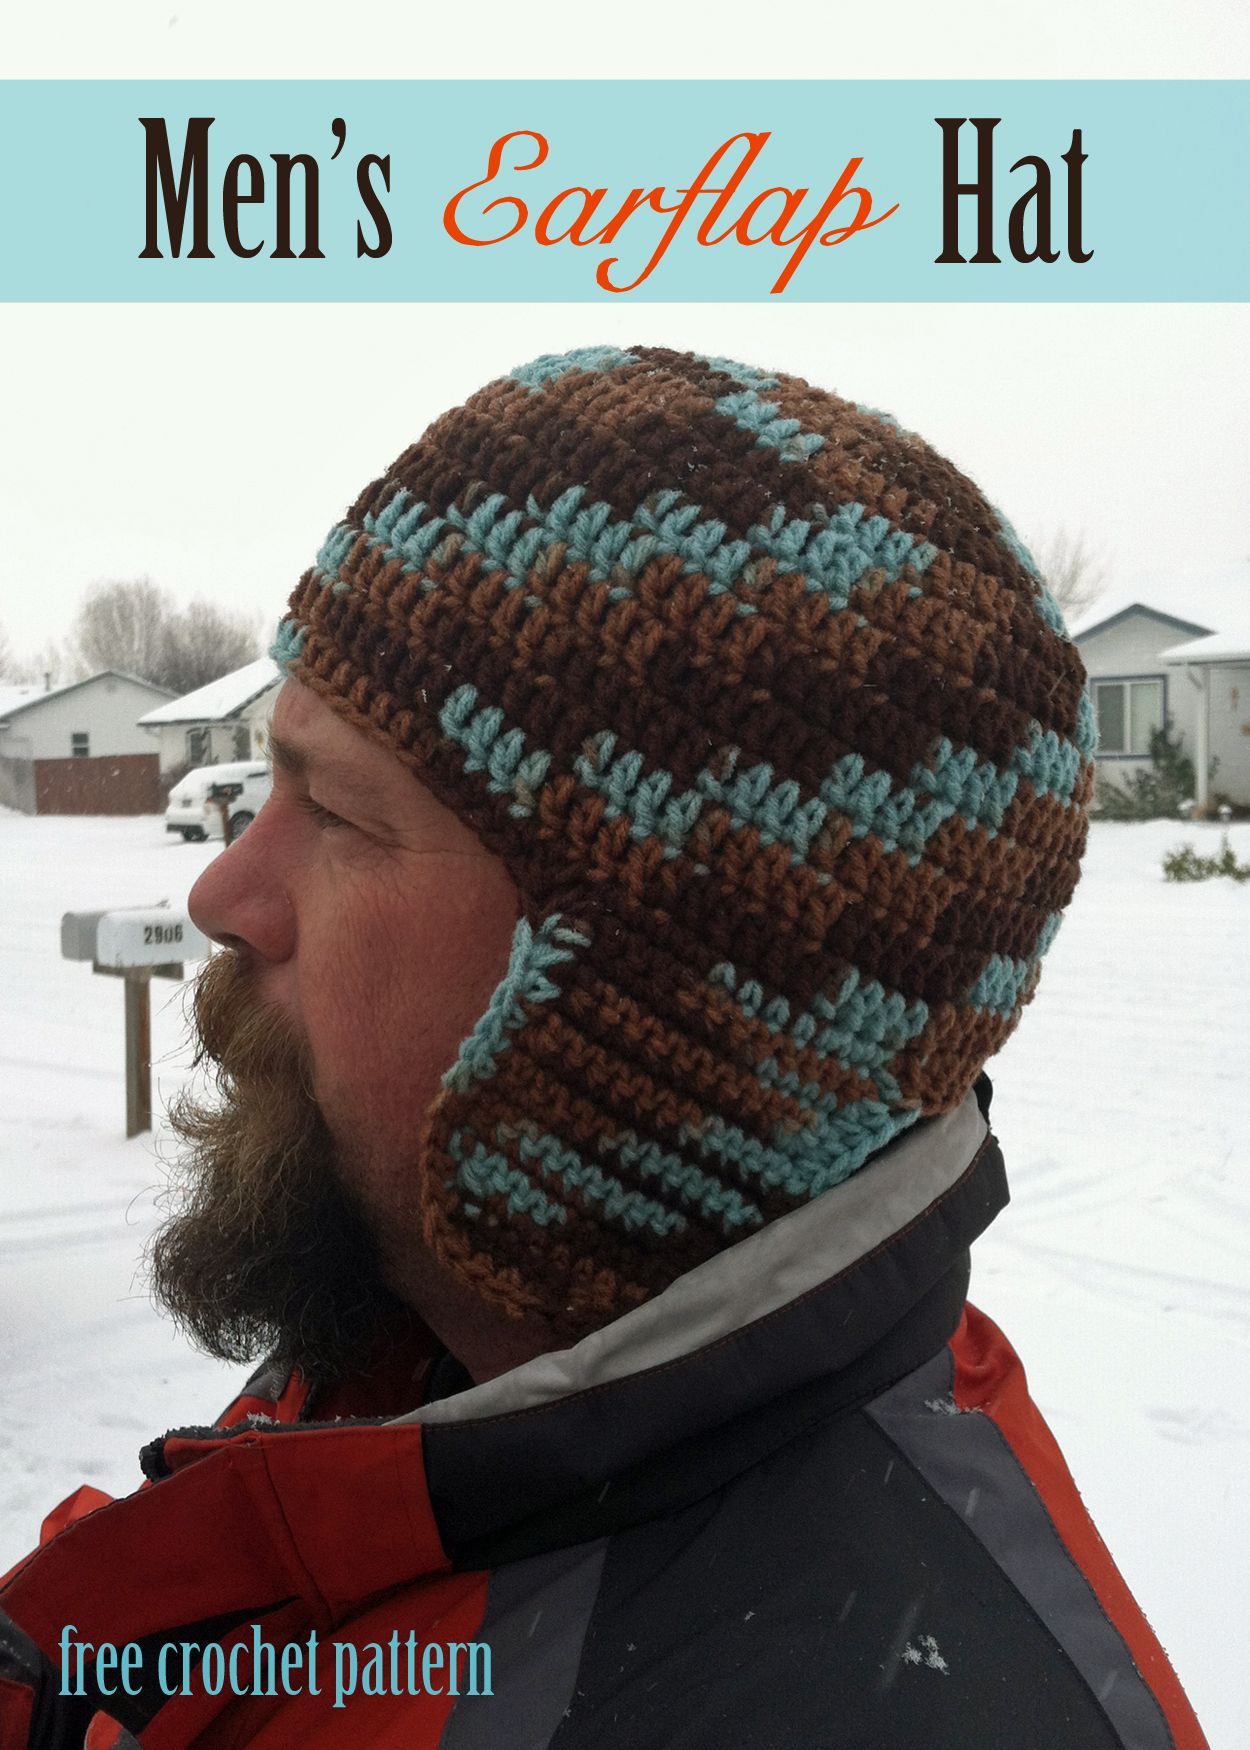 Free Crochet Ear Flap Patterns Free Crochet Pattern Mens Earflap